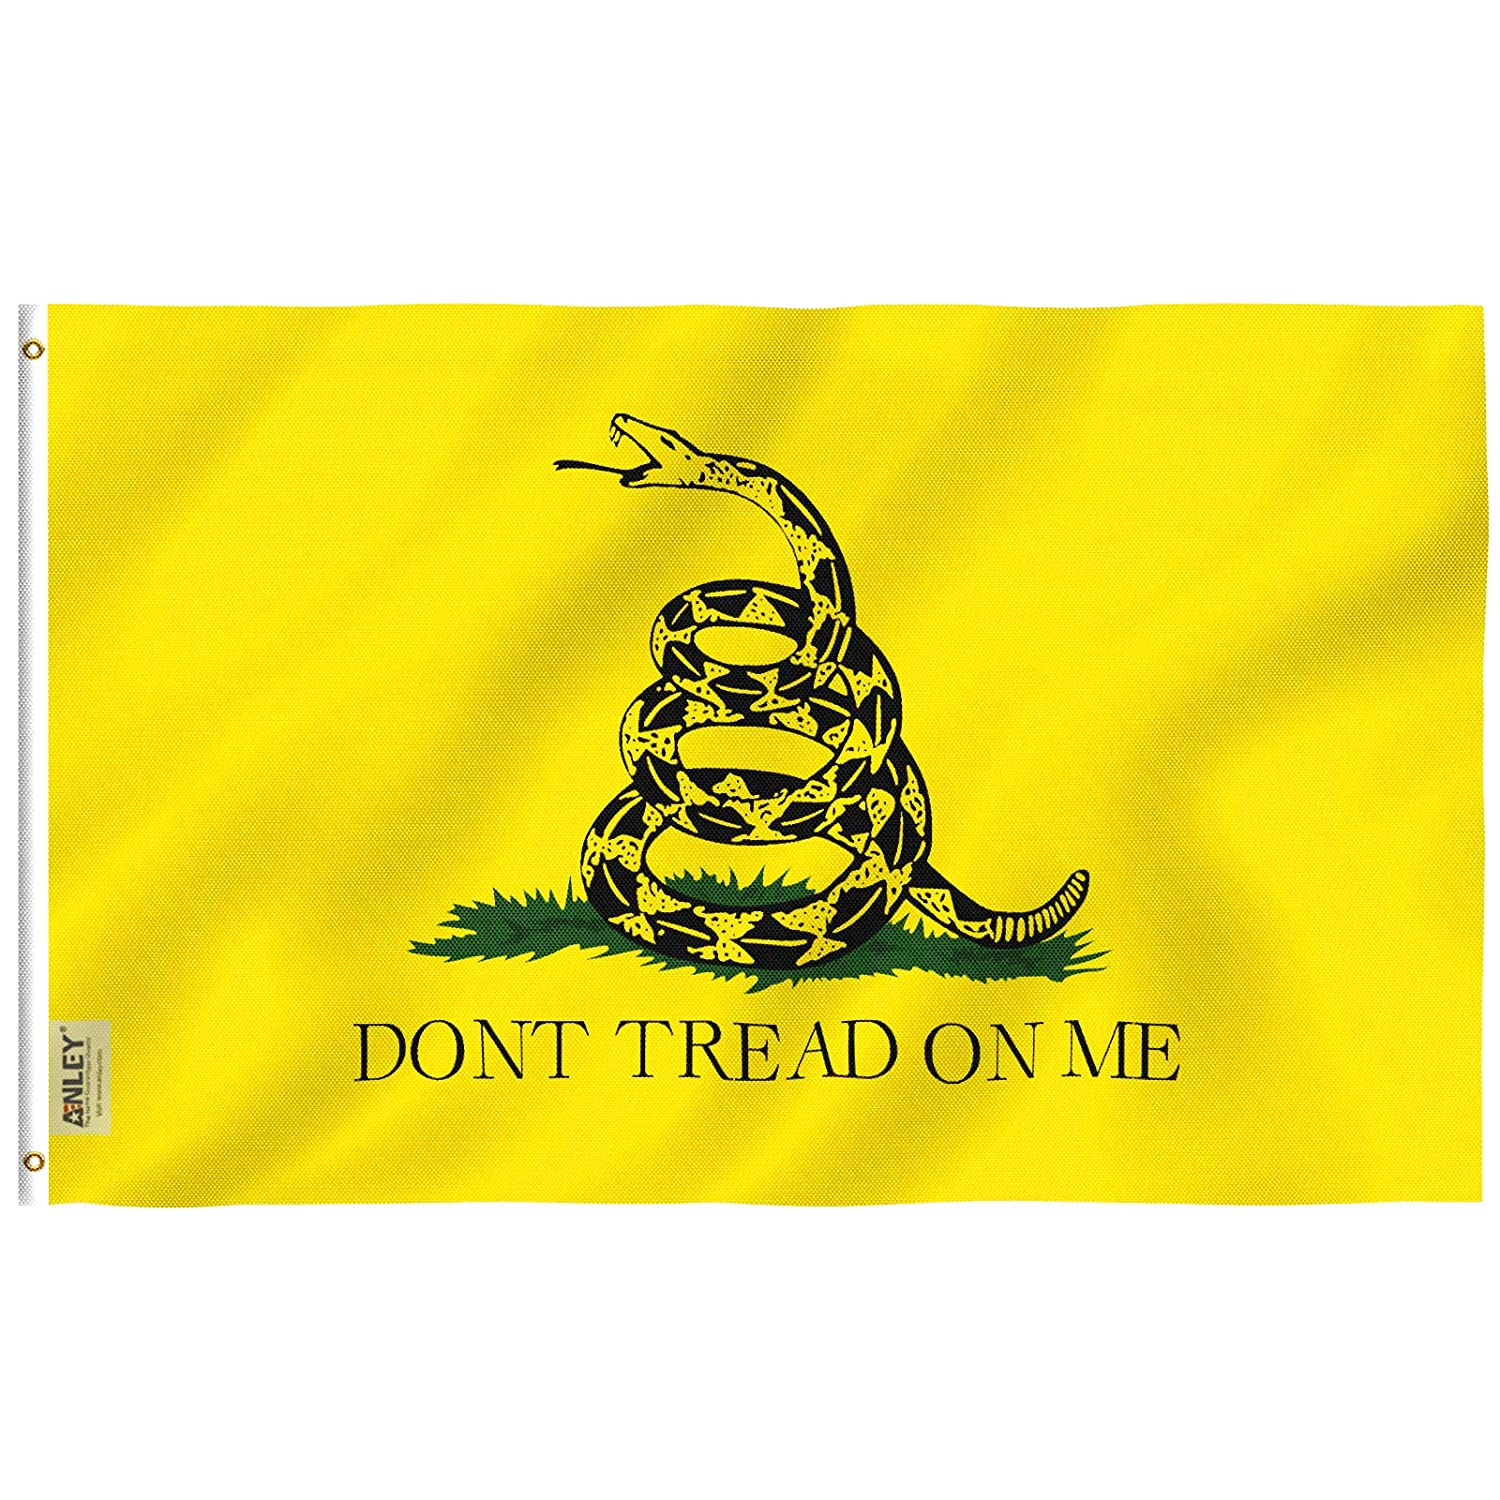 ANLEY® [Fly Breeze] 3x5 Foot Don't Tread On Me Polyester Flag - Vivid Color and UV Fade Resistant - Canvas Header and Double Stitched - Dont Tread On Me Banner Flags with Brass Grommets 3 X 5 Ft